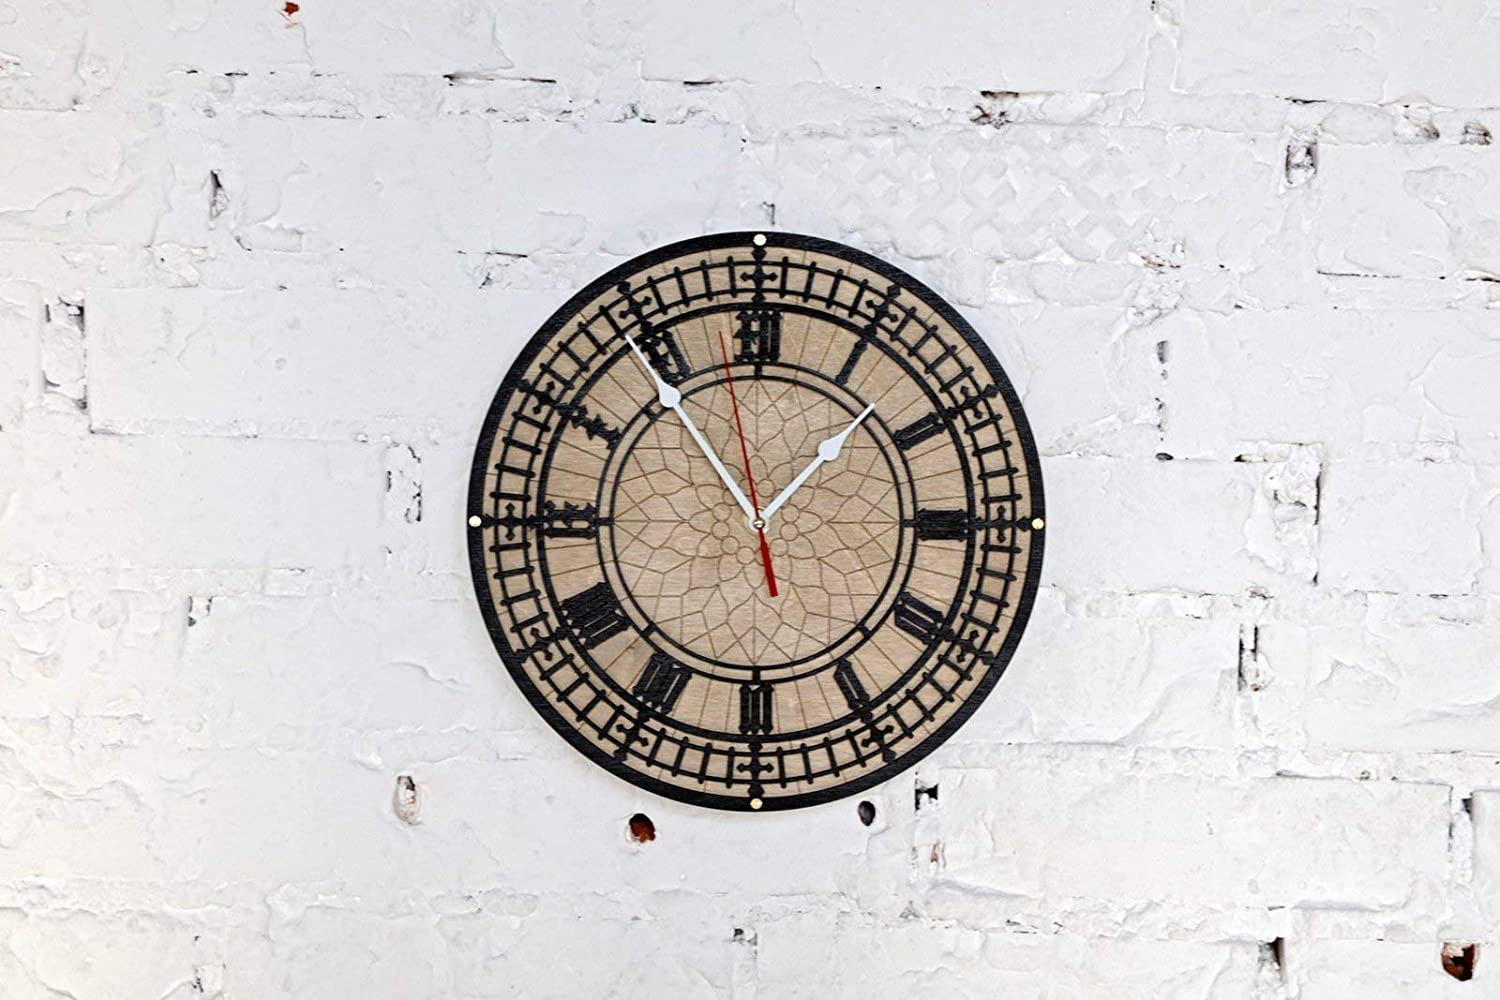 BIG BEN Handcrafted wooden wall clock Unique Vintage large housewarming one-of-a-kind victorian home decor gift london tower england